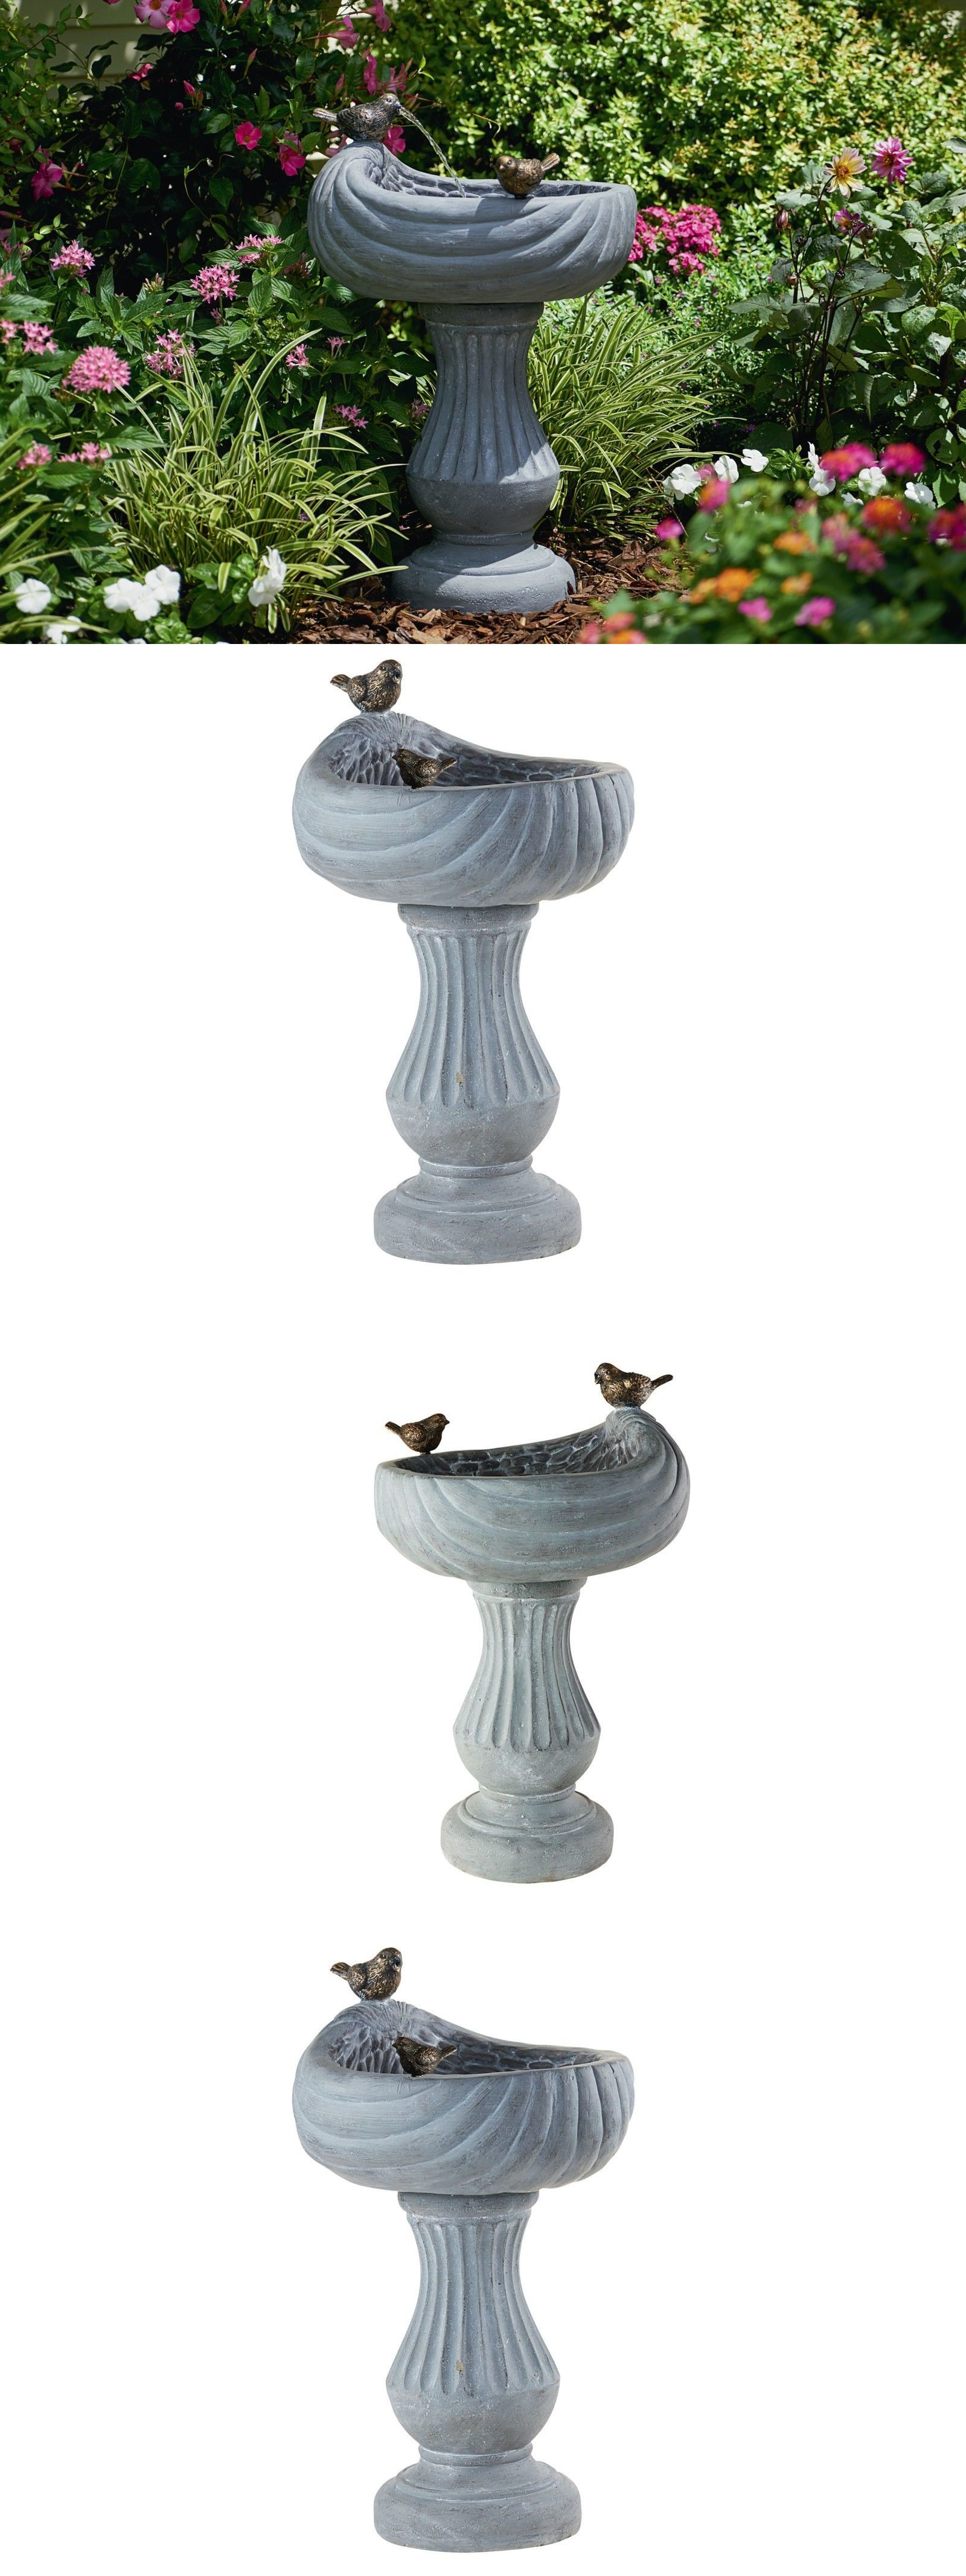 birdbaths 20500: bird garden fountain bath water outdoor waterfall